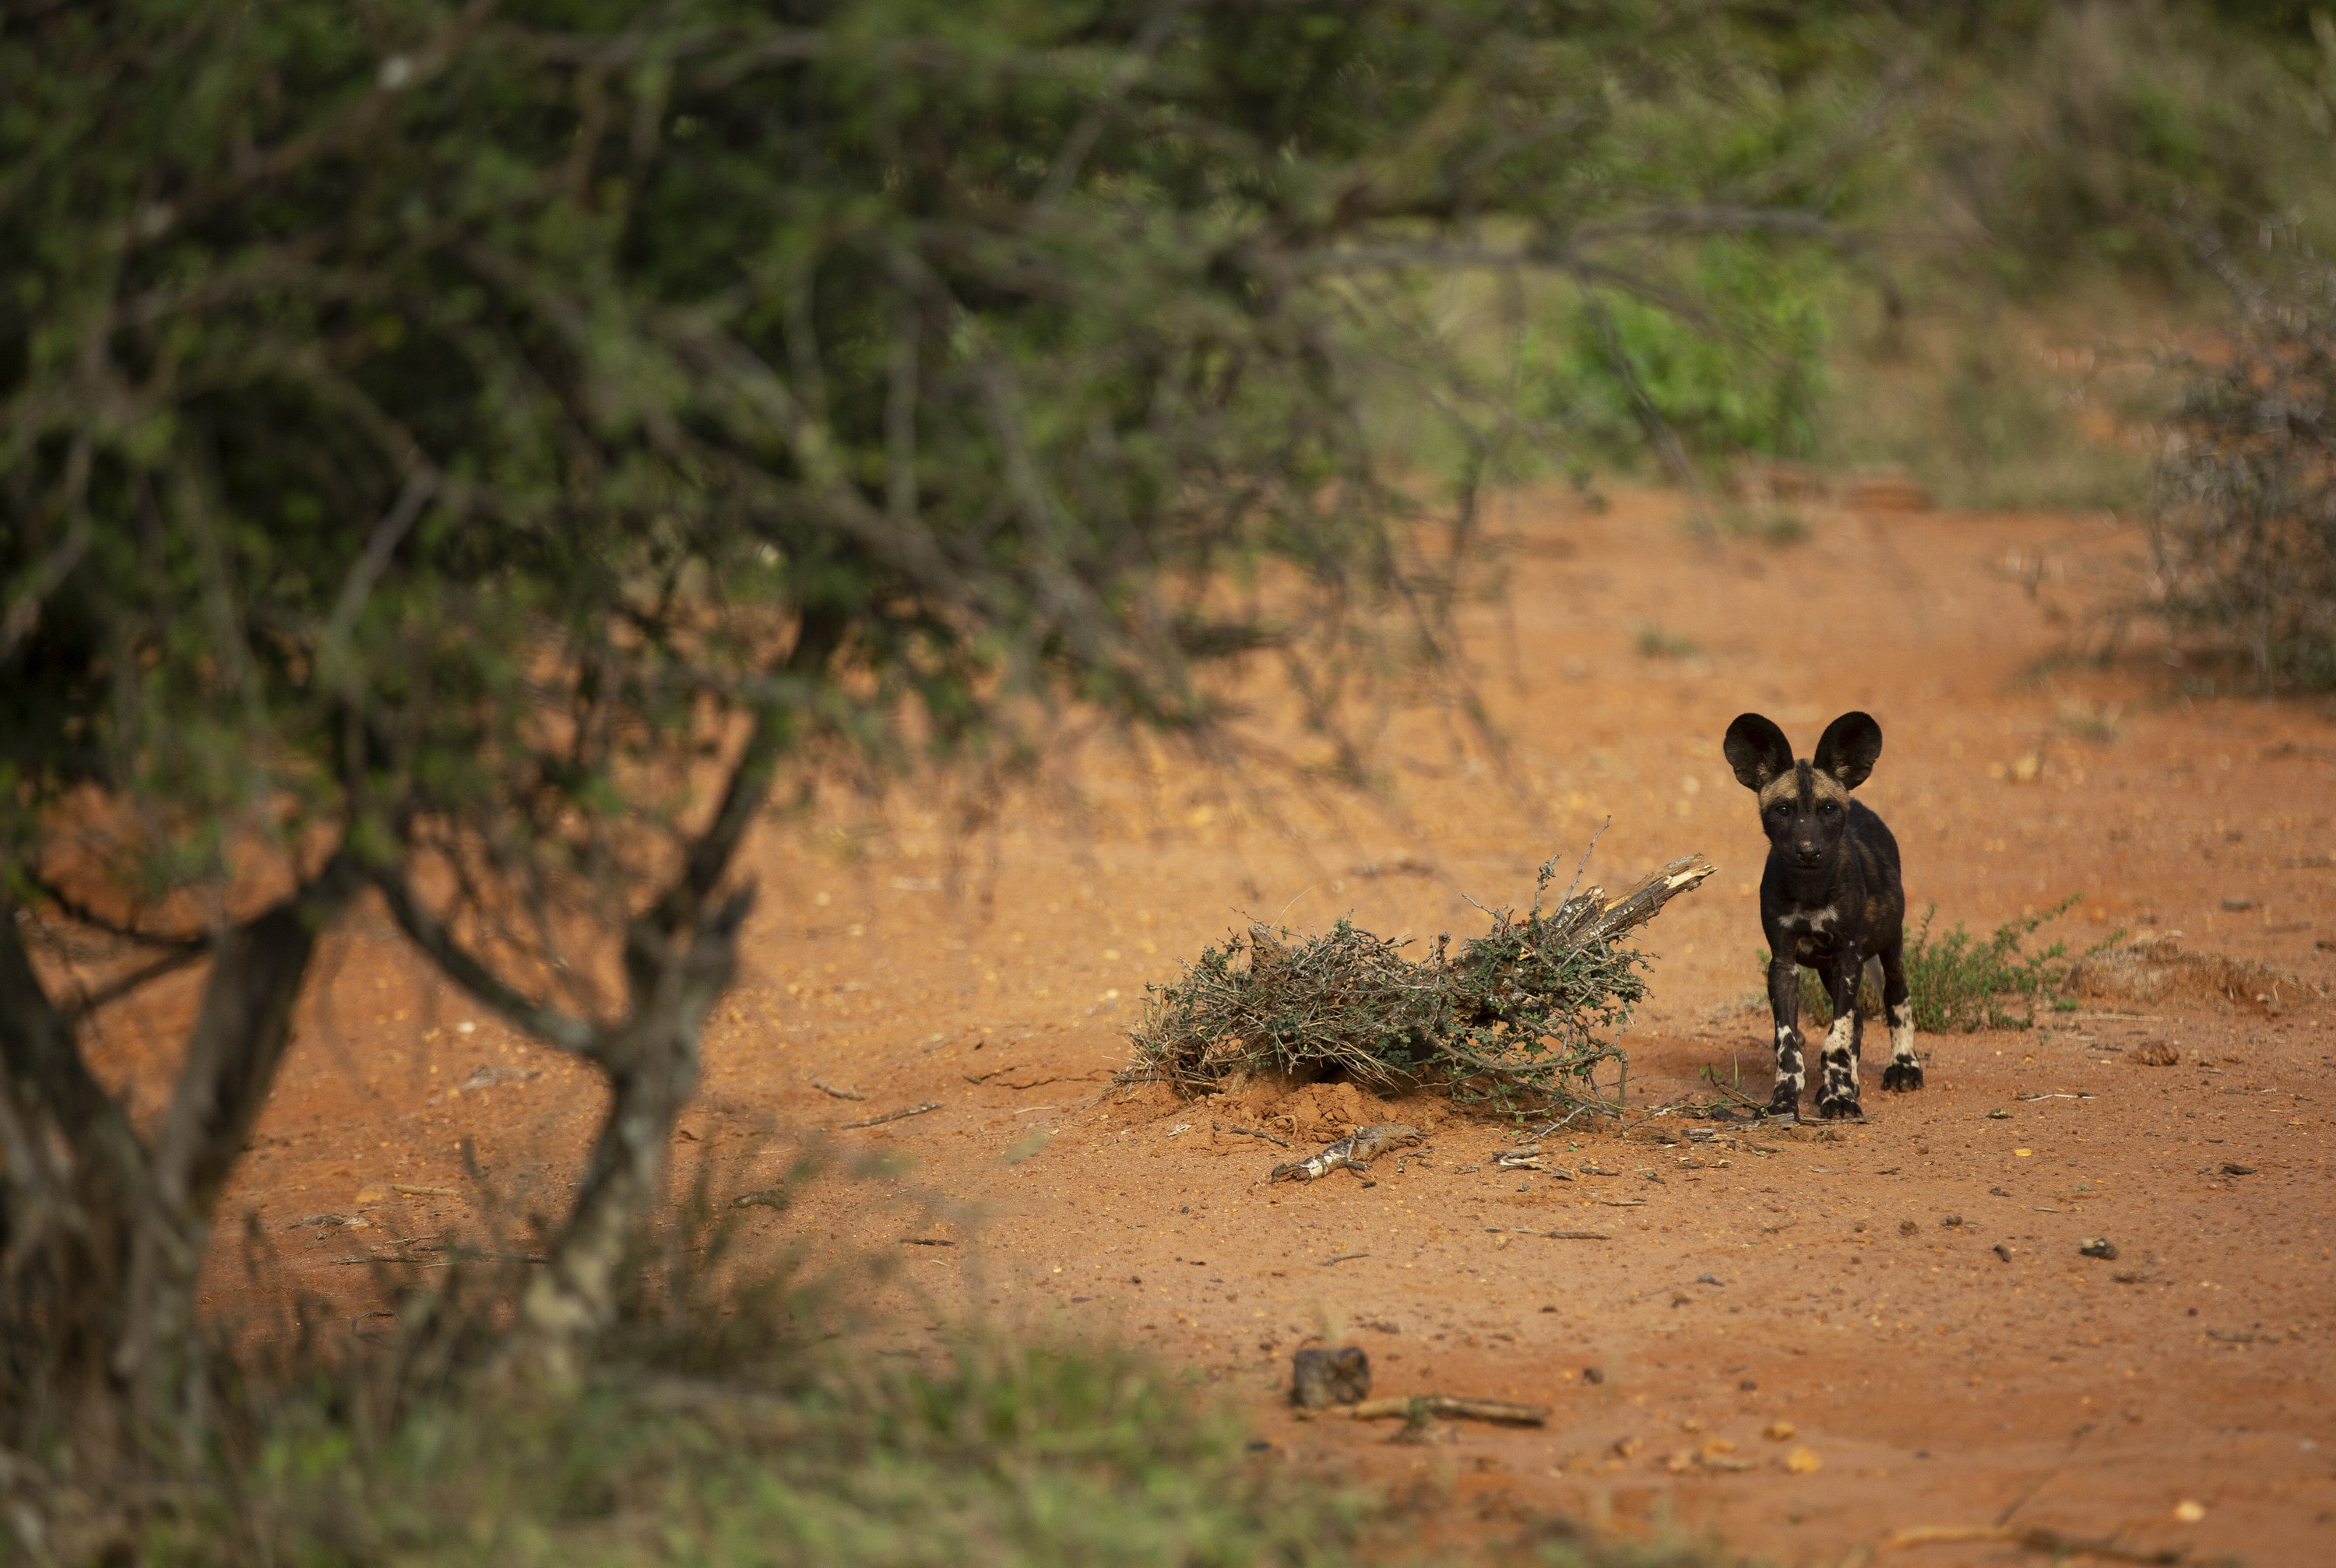 Kip stands with ears prickled. (National Geographic for Disney+/Melanie Gerry)